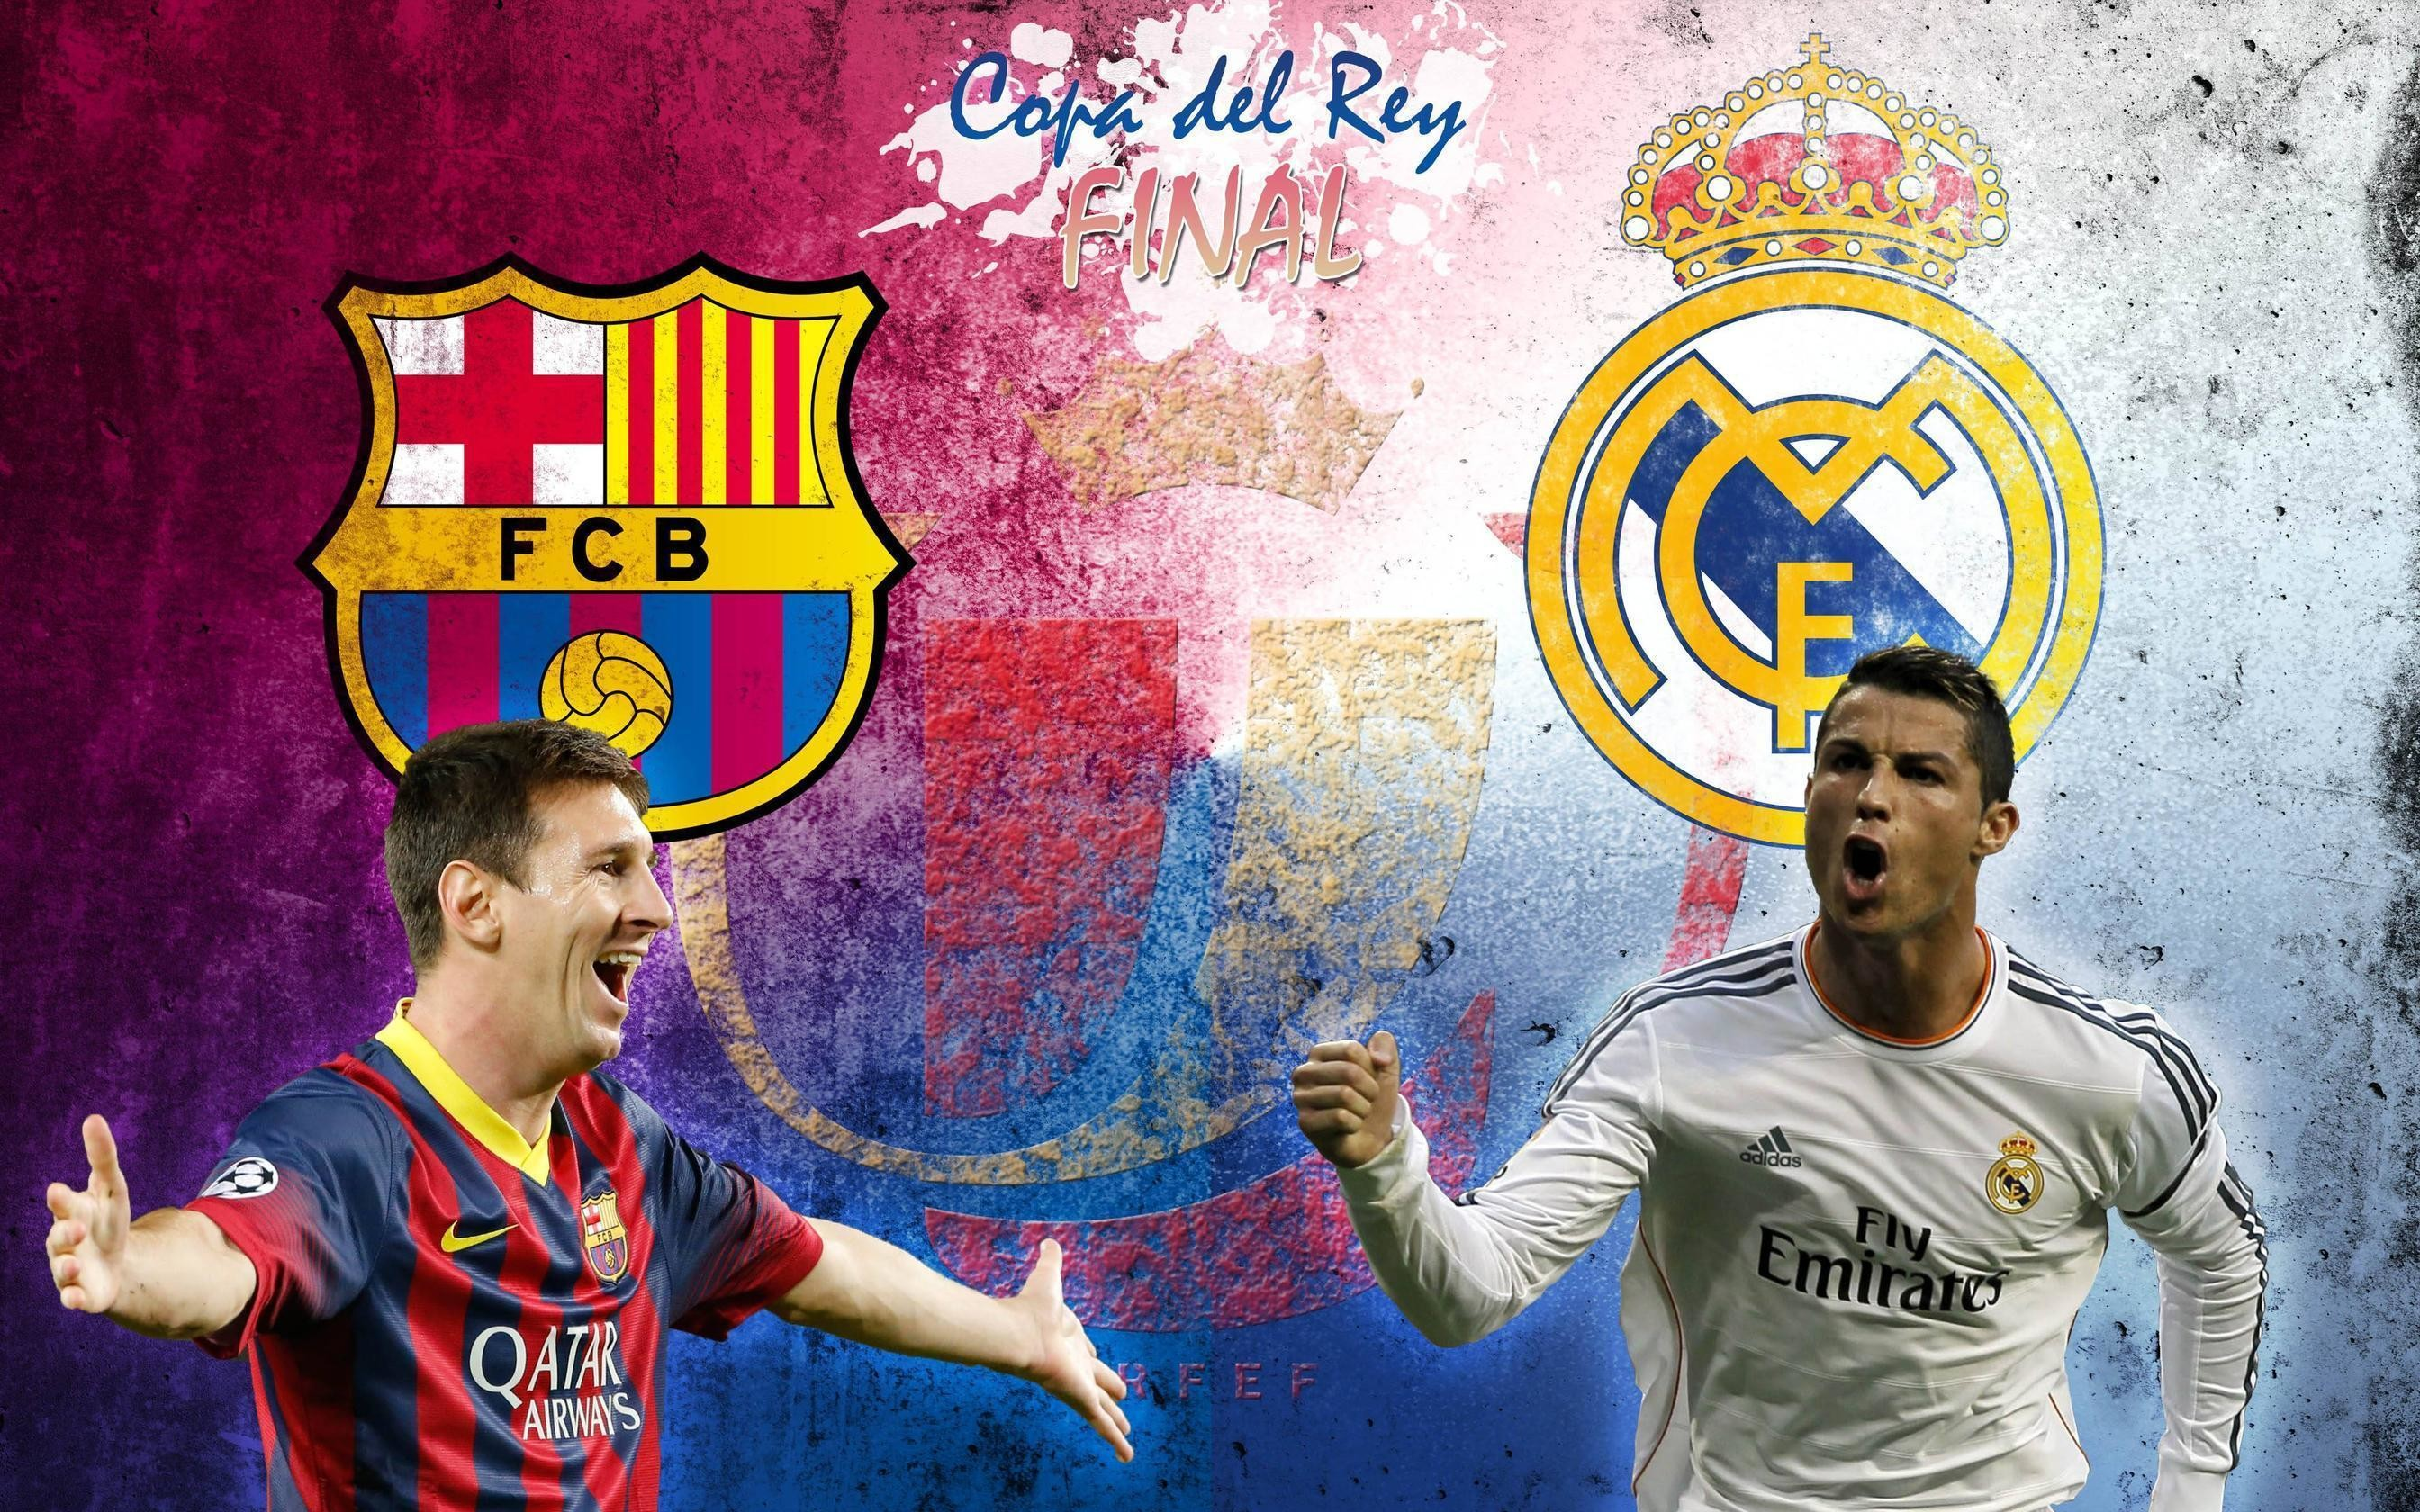 2688x1680 Messi Vs Ronaldo Wallpapers 2016 HD - Wallpaper Cave